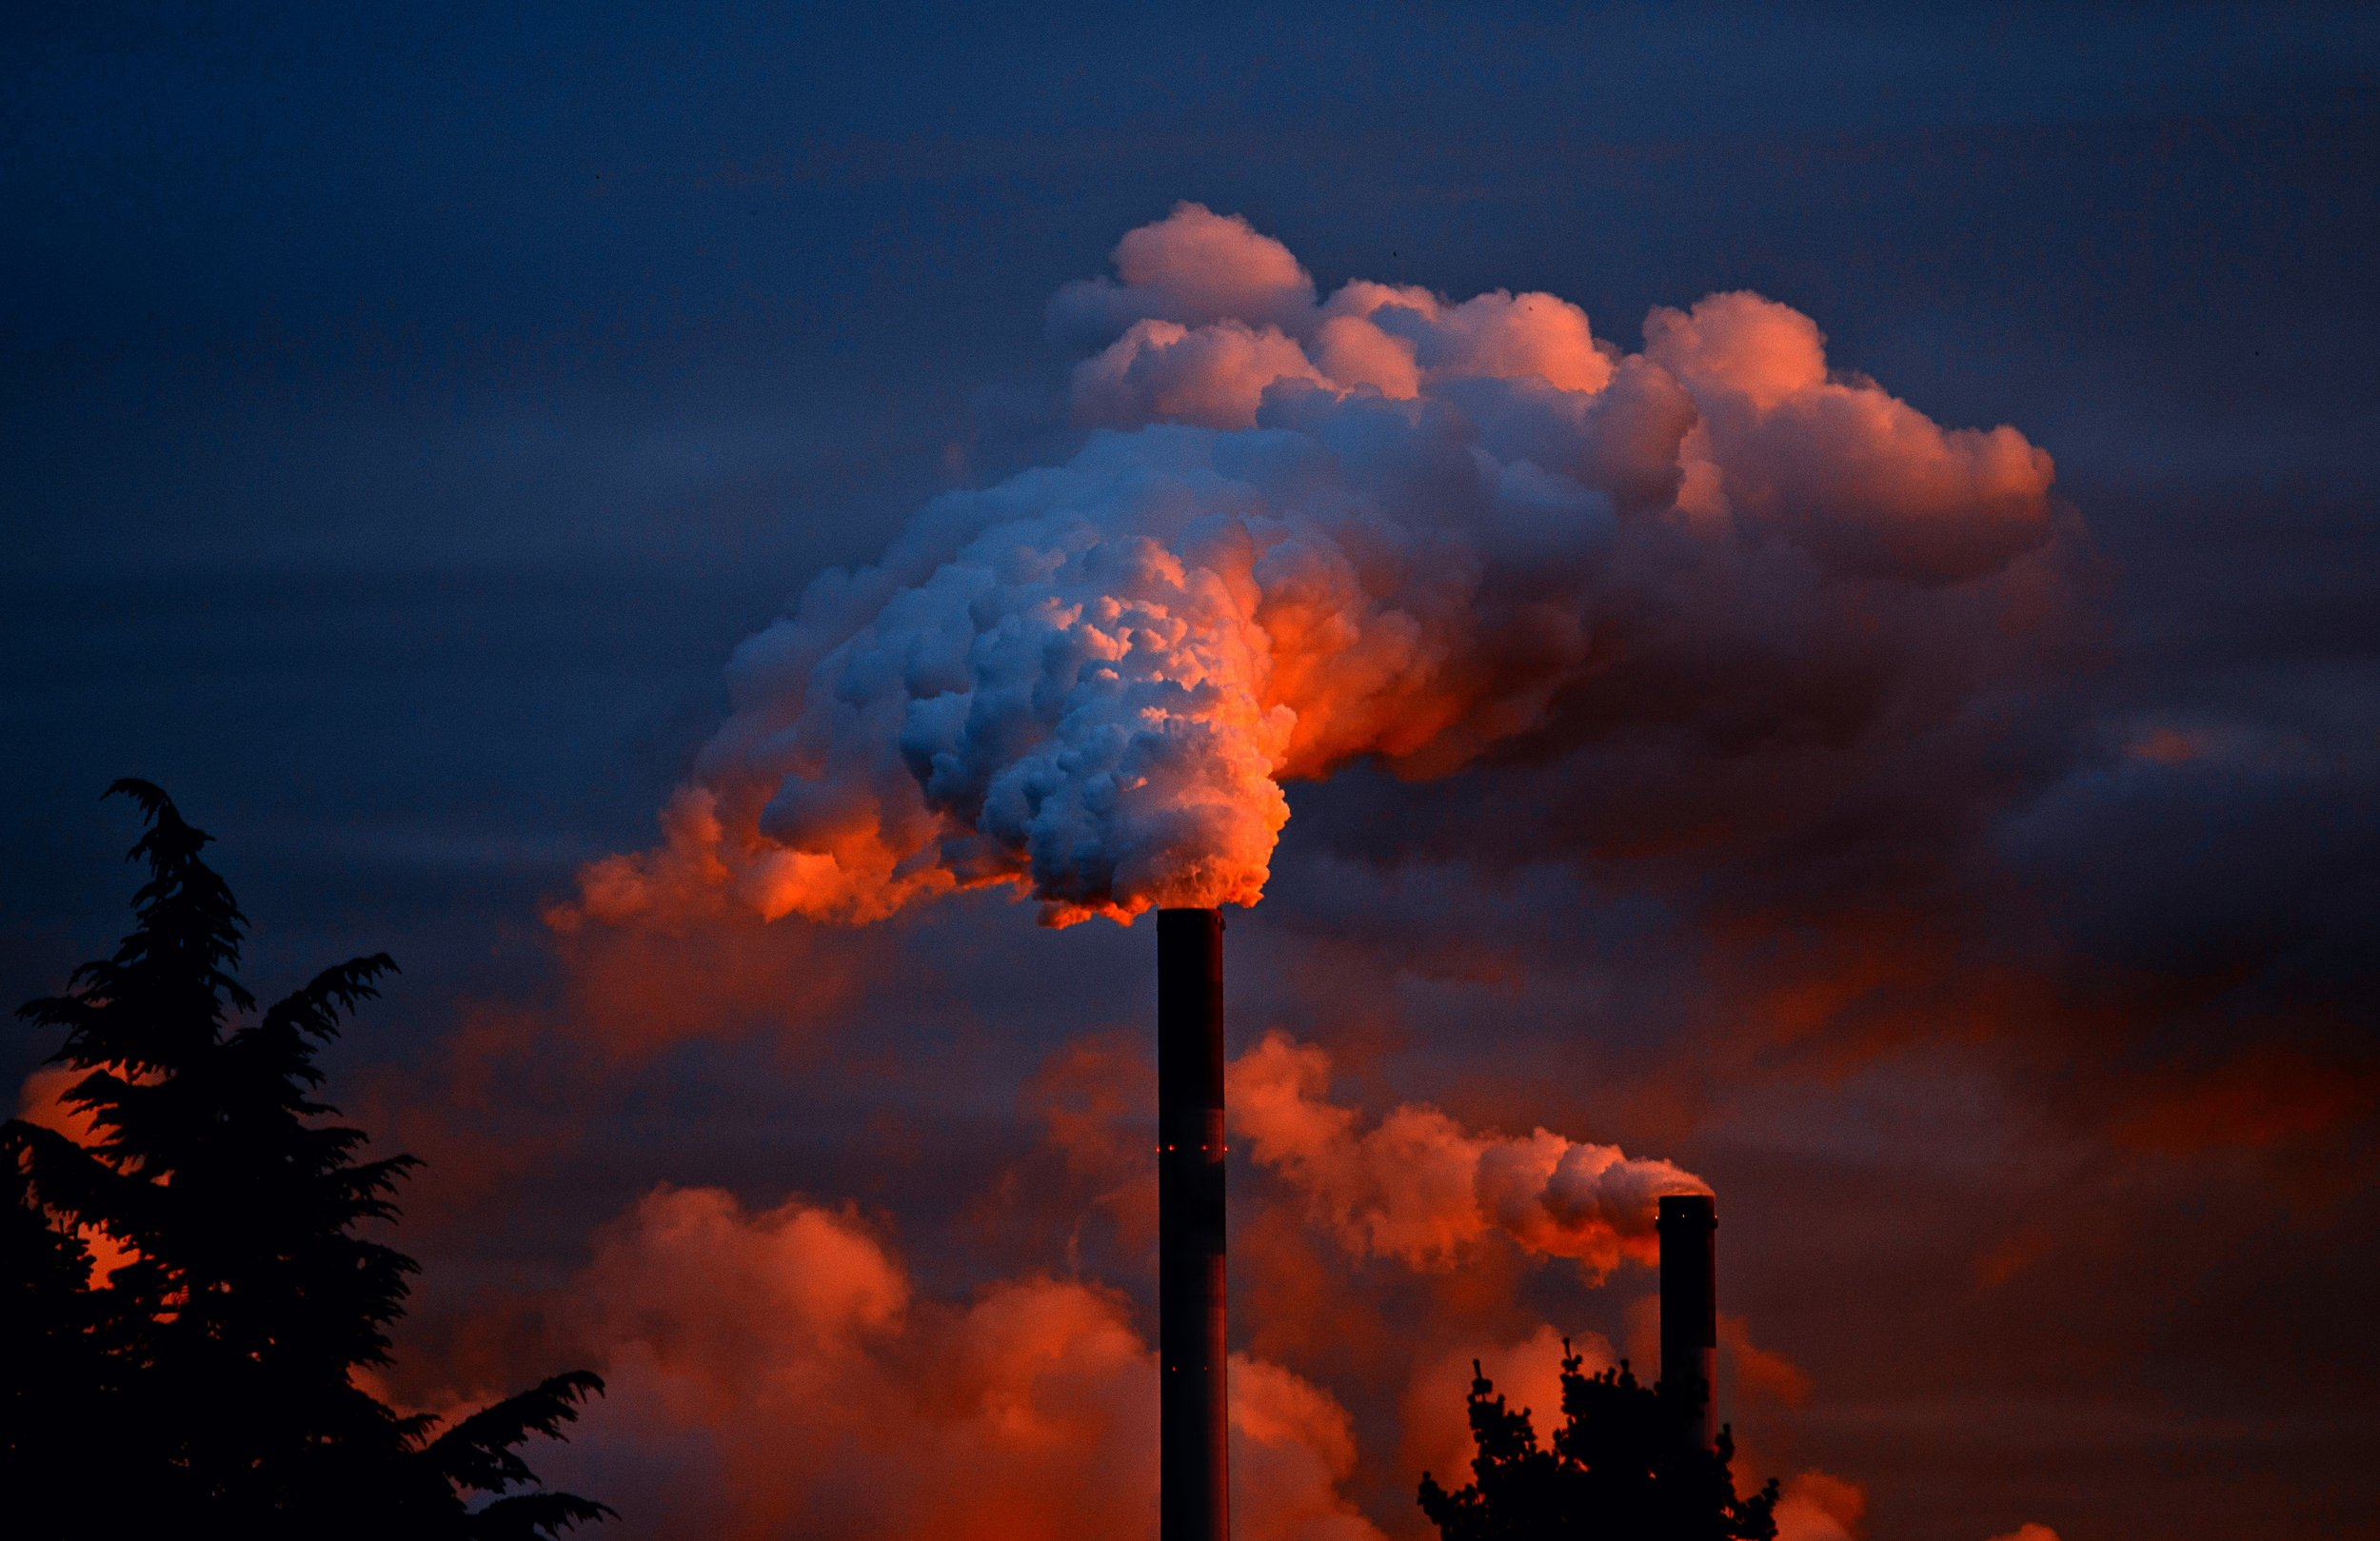 WHy don't more people care about climate change? -